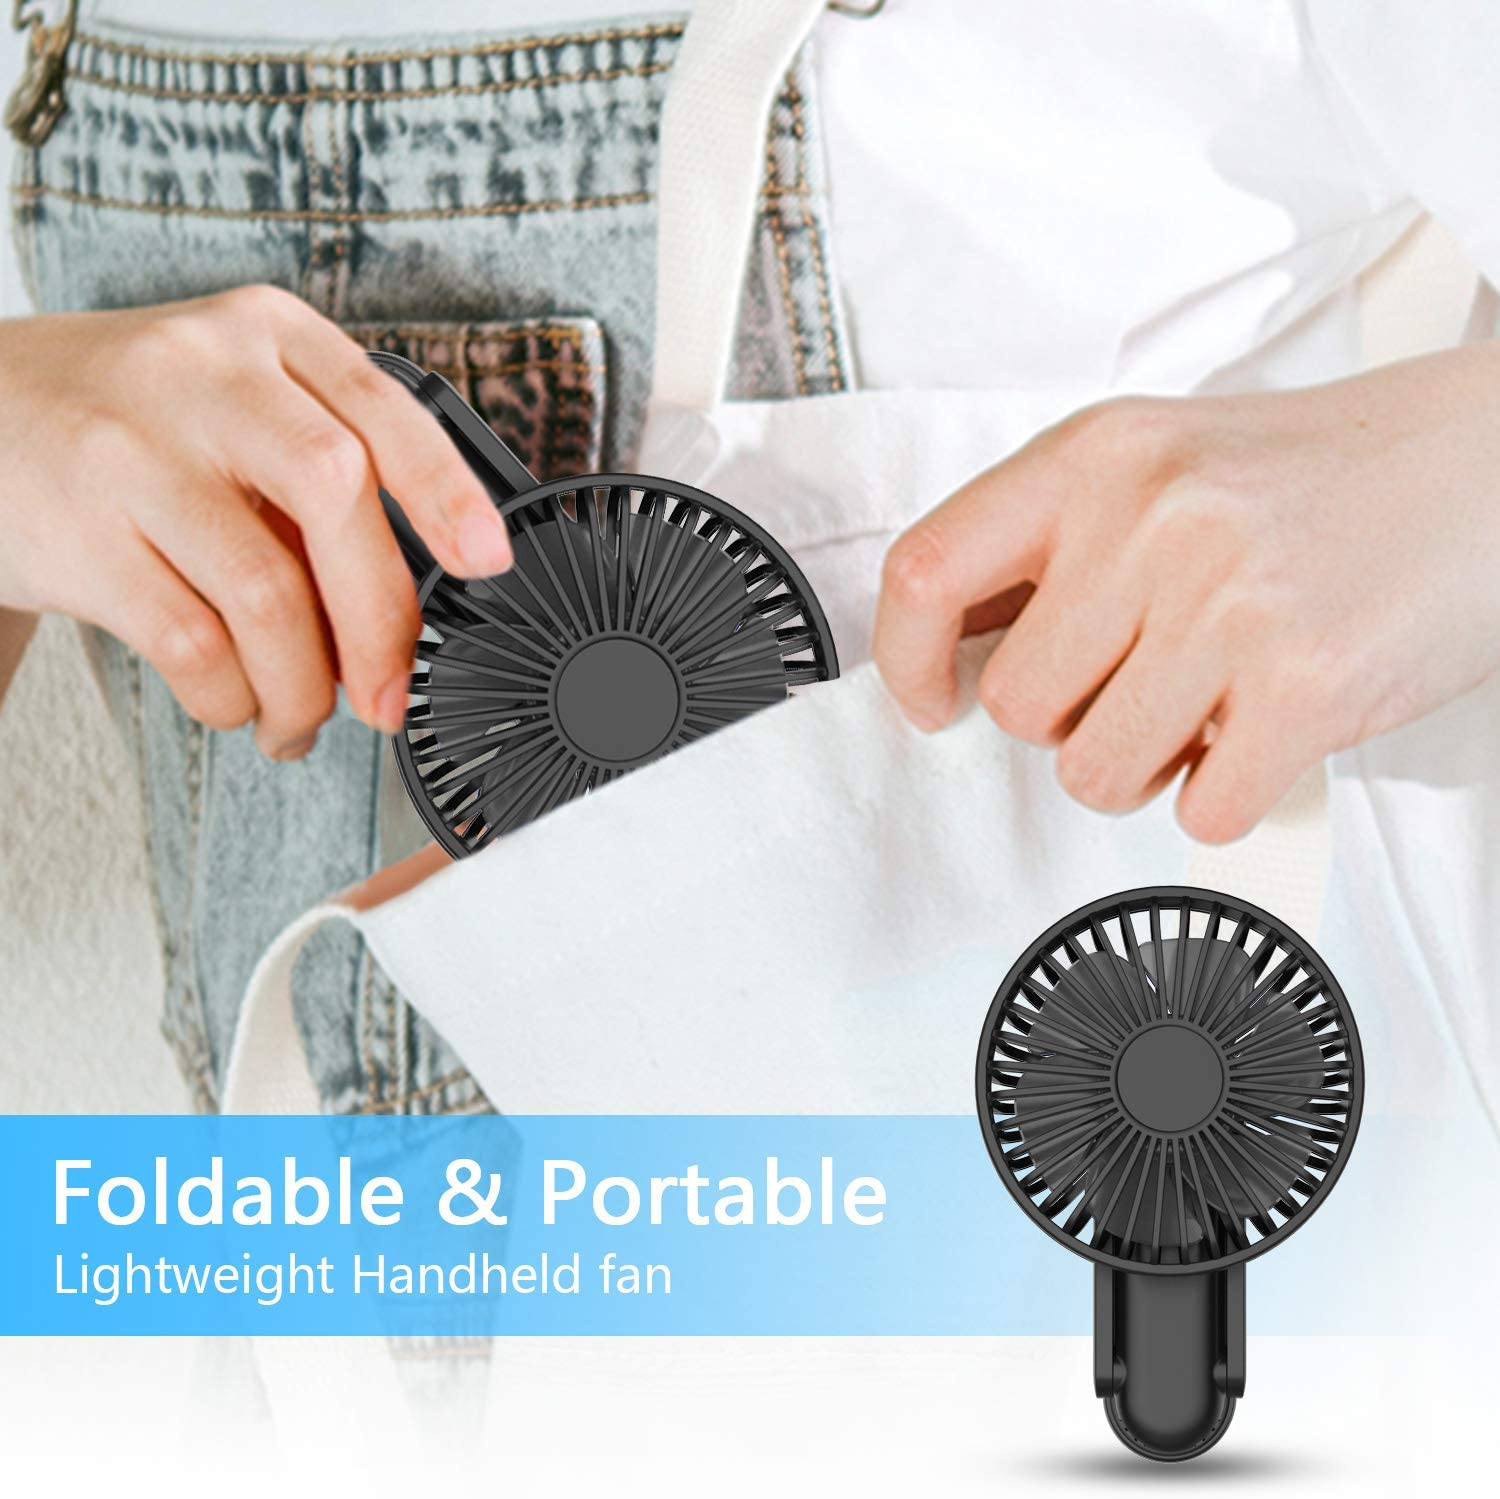 WOWGO Portable Handheld Fan - Mini Personal Fan 180° Rotating Adjustment, USB Rechargeable 2500mAh 3 Speed Hanging Personal Fan with USB output port for Home Office Indoor Use Outdoor Travel (black)